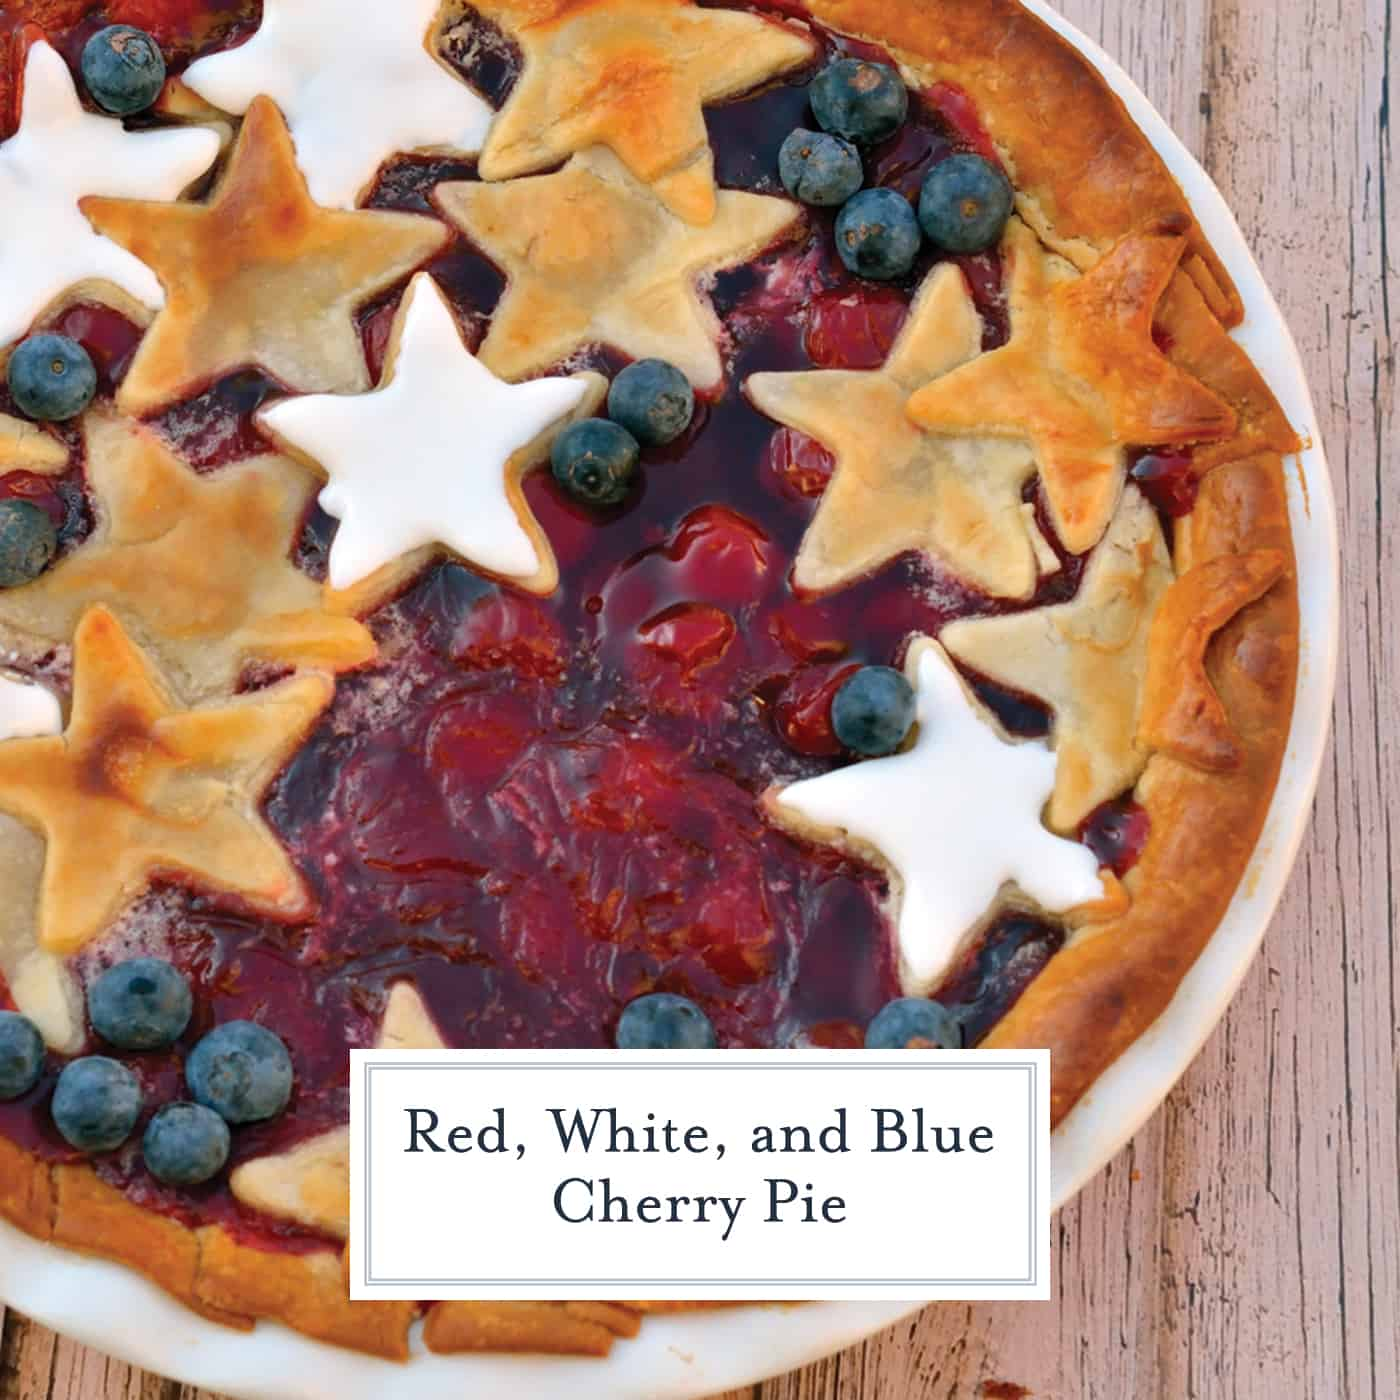 Red, White and Blue Cherry Pie is an easy cherry pie recipe using cookie icing, blueberries and cookie cutters to make a stunning and cute pie perfect for any patriotic holiday! #cherrypie #4thofjulyrecipes www.savoryexperiments.com